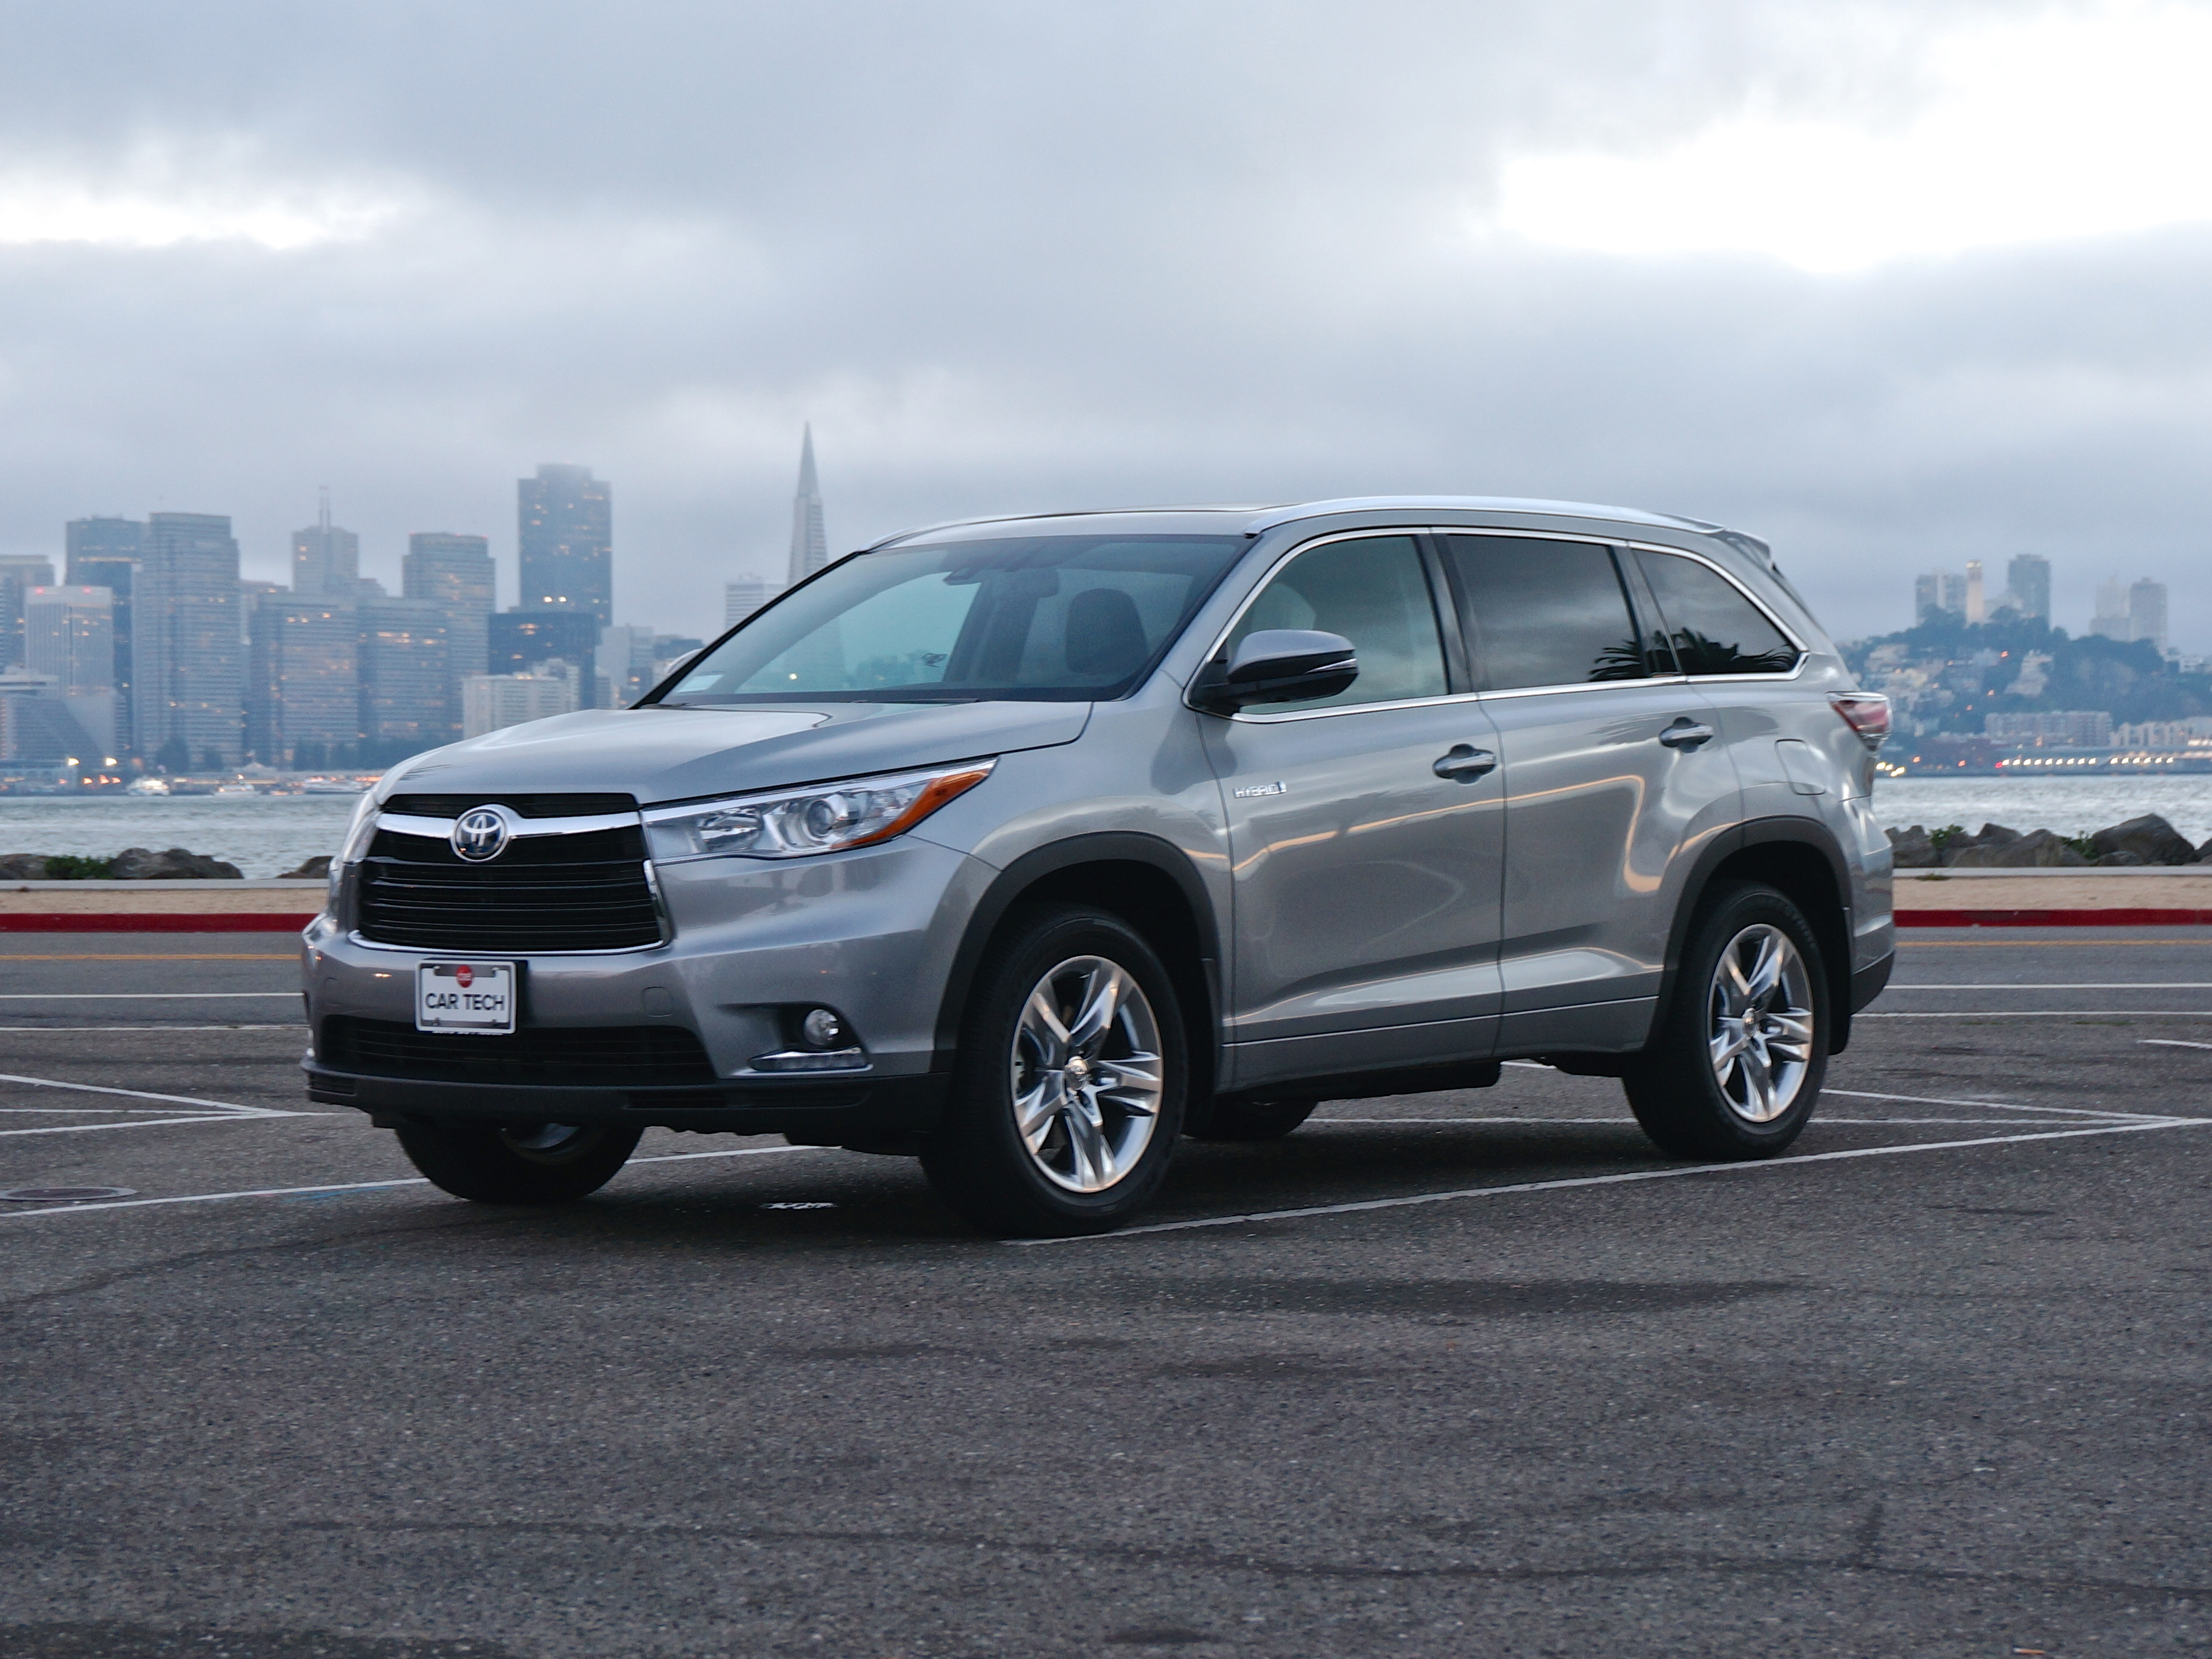 2014 Toyota Highlander Hybrid scores on fuel efficiency